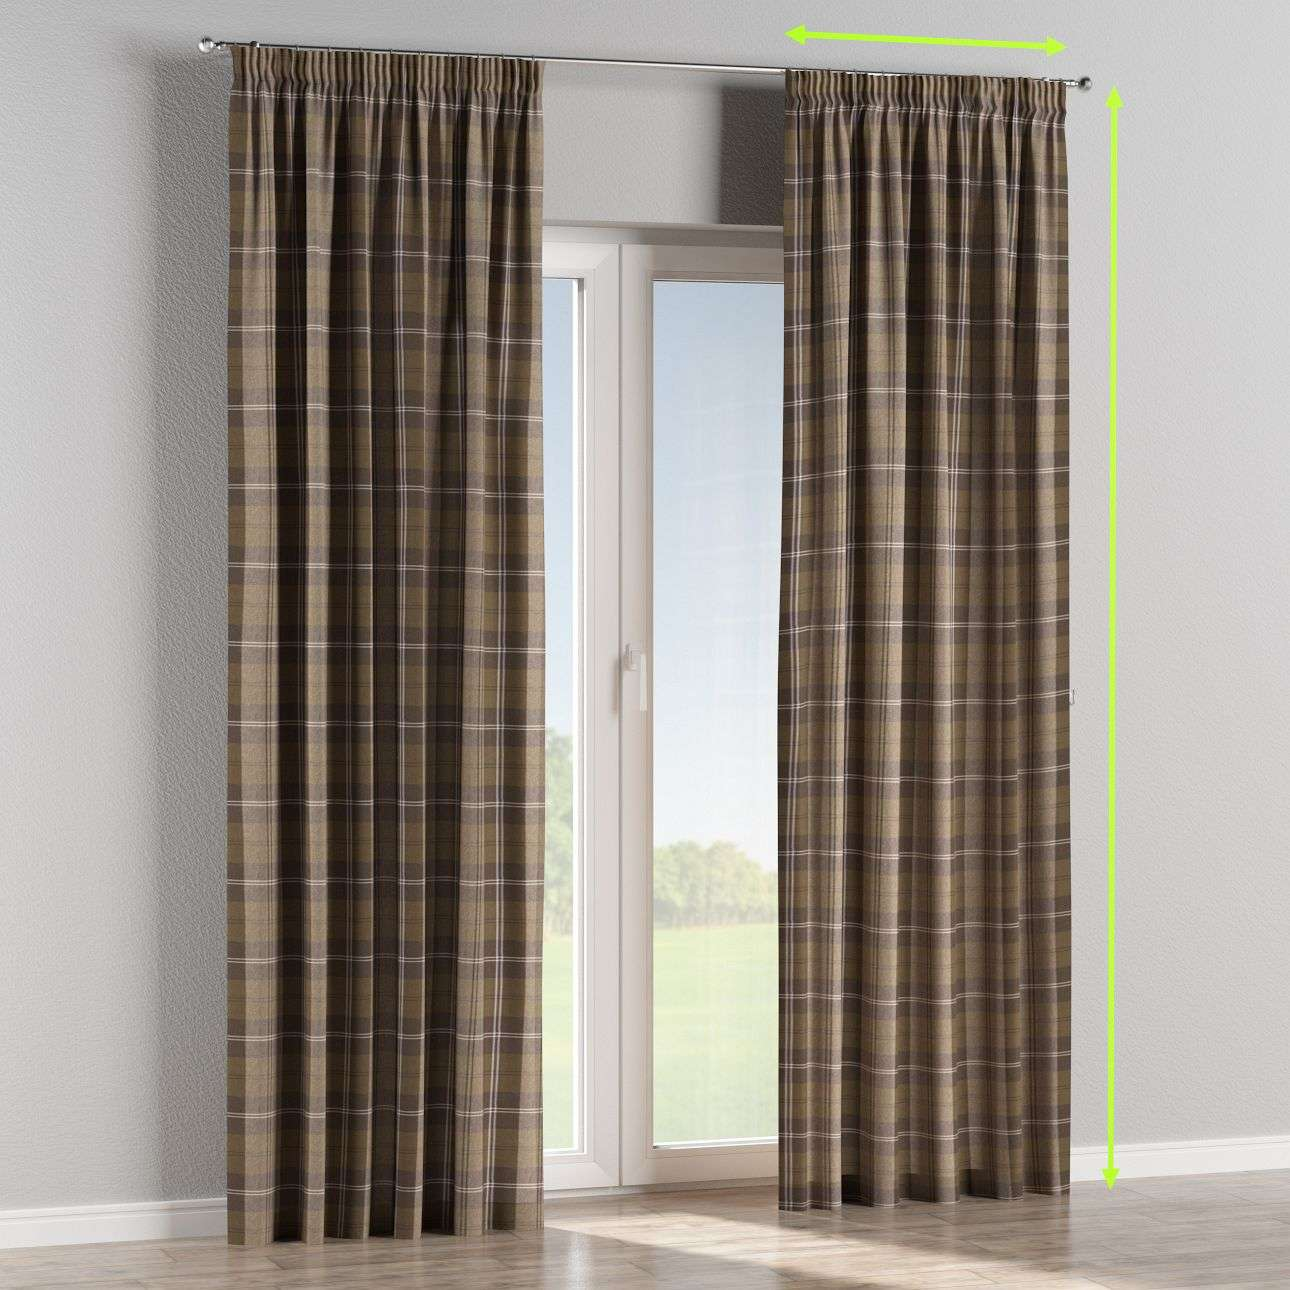 Pencil pleat curtains in collection Edinburgh, fabric: 115-76